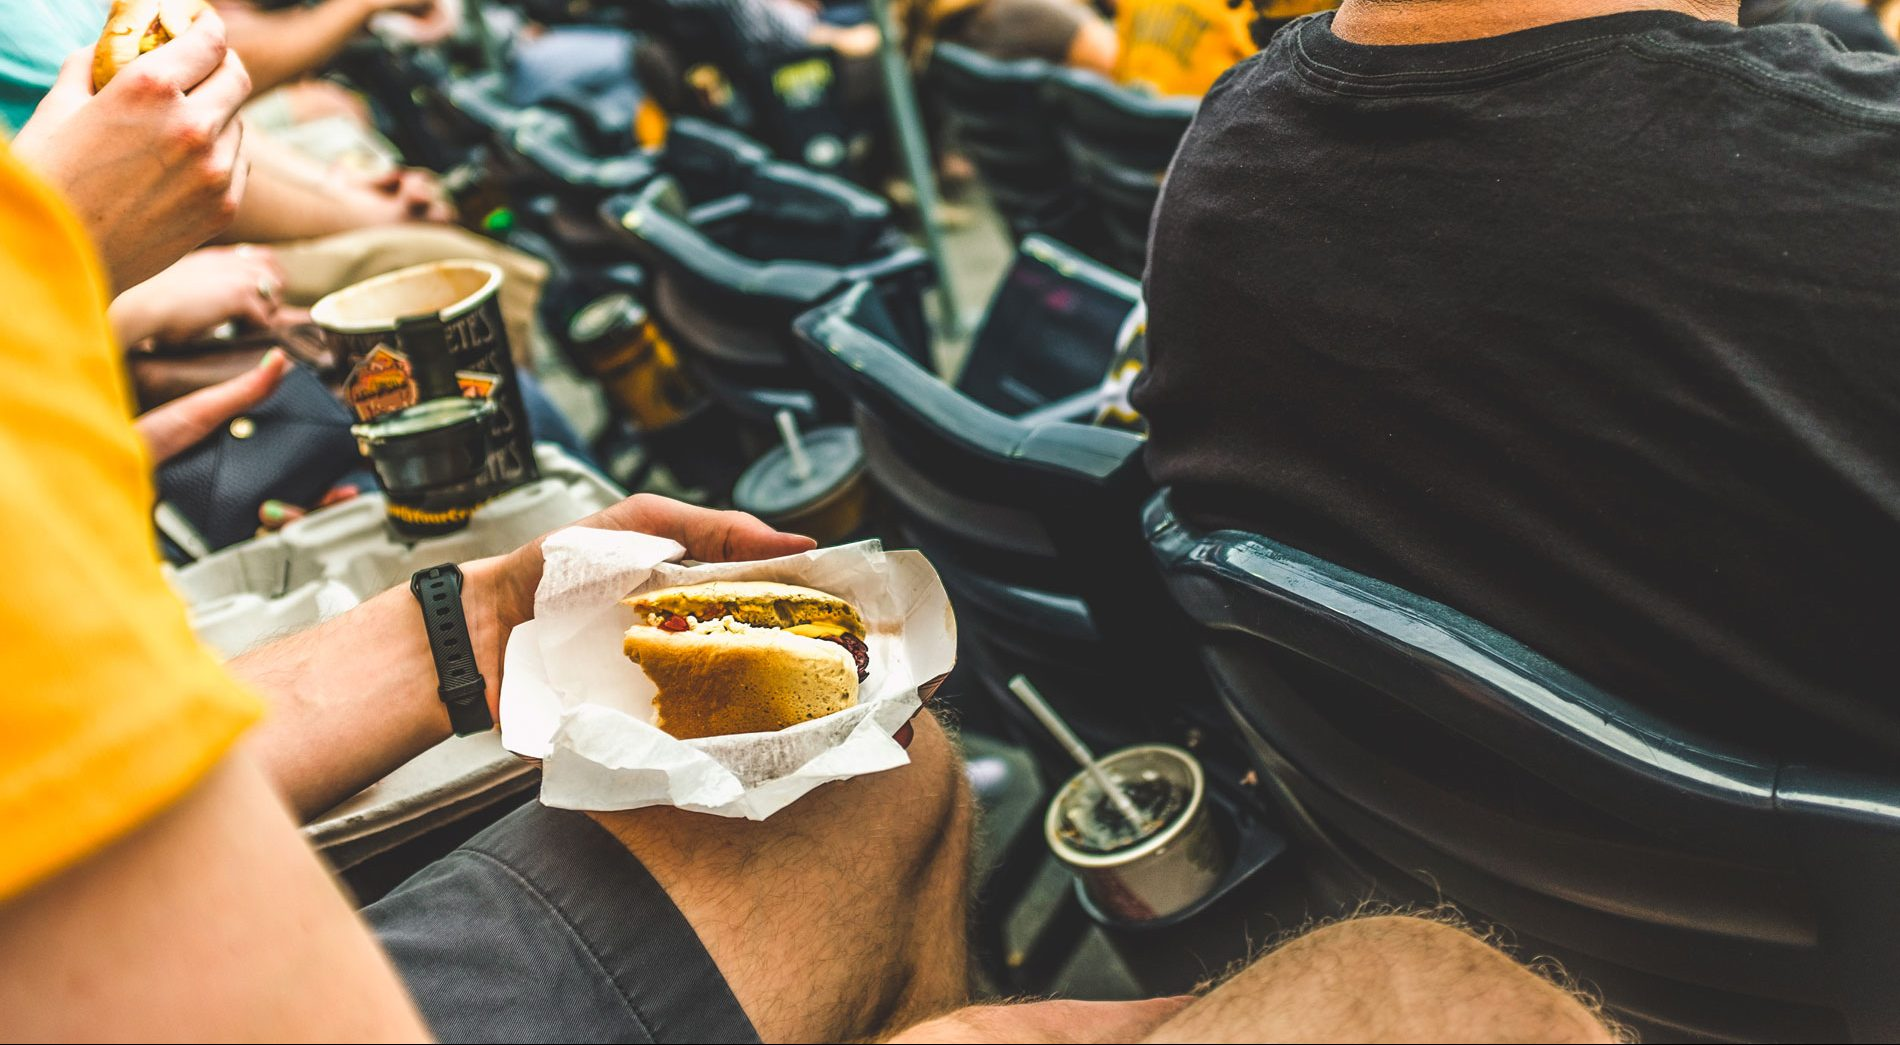 A person eating oversized hot dog in a baseball stadium.